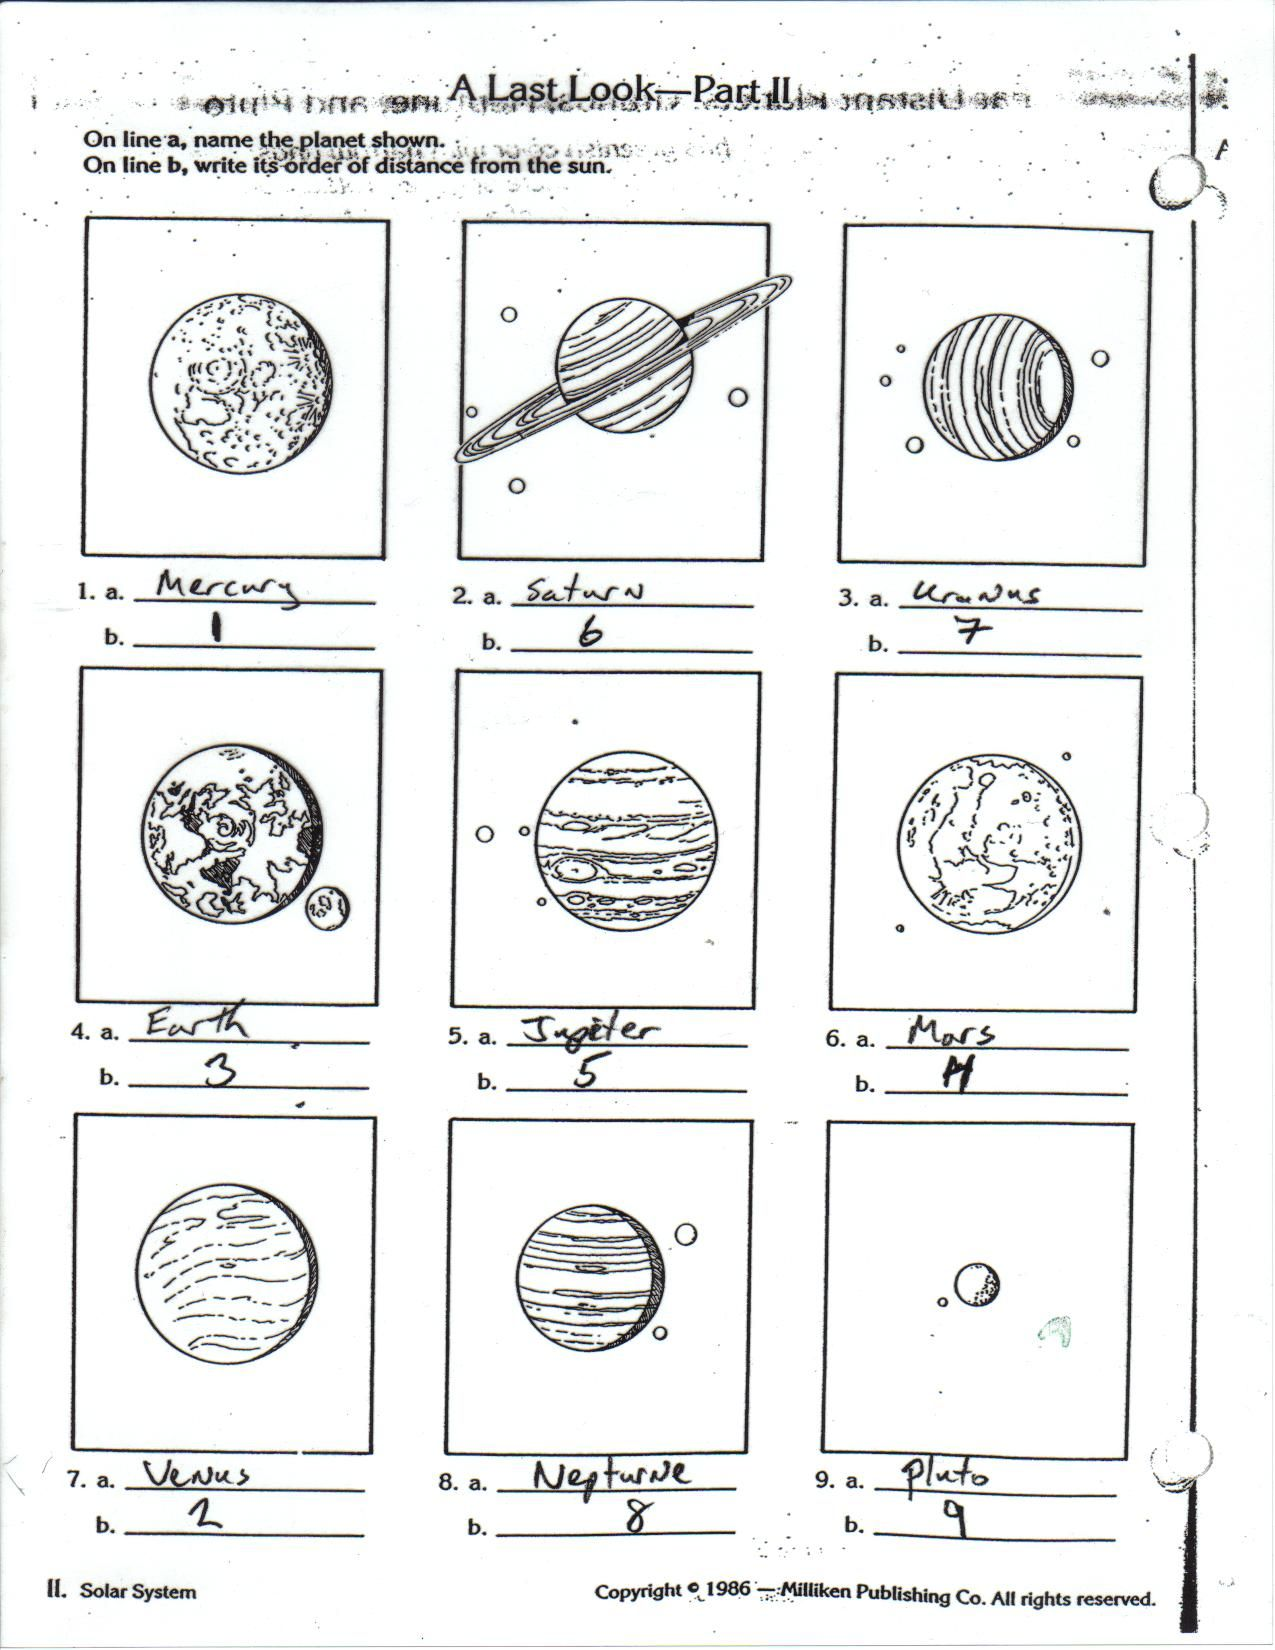 planets for kids worksheets - Google Search | Planet for ...